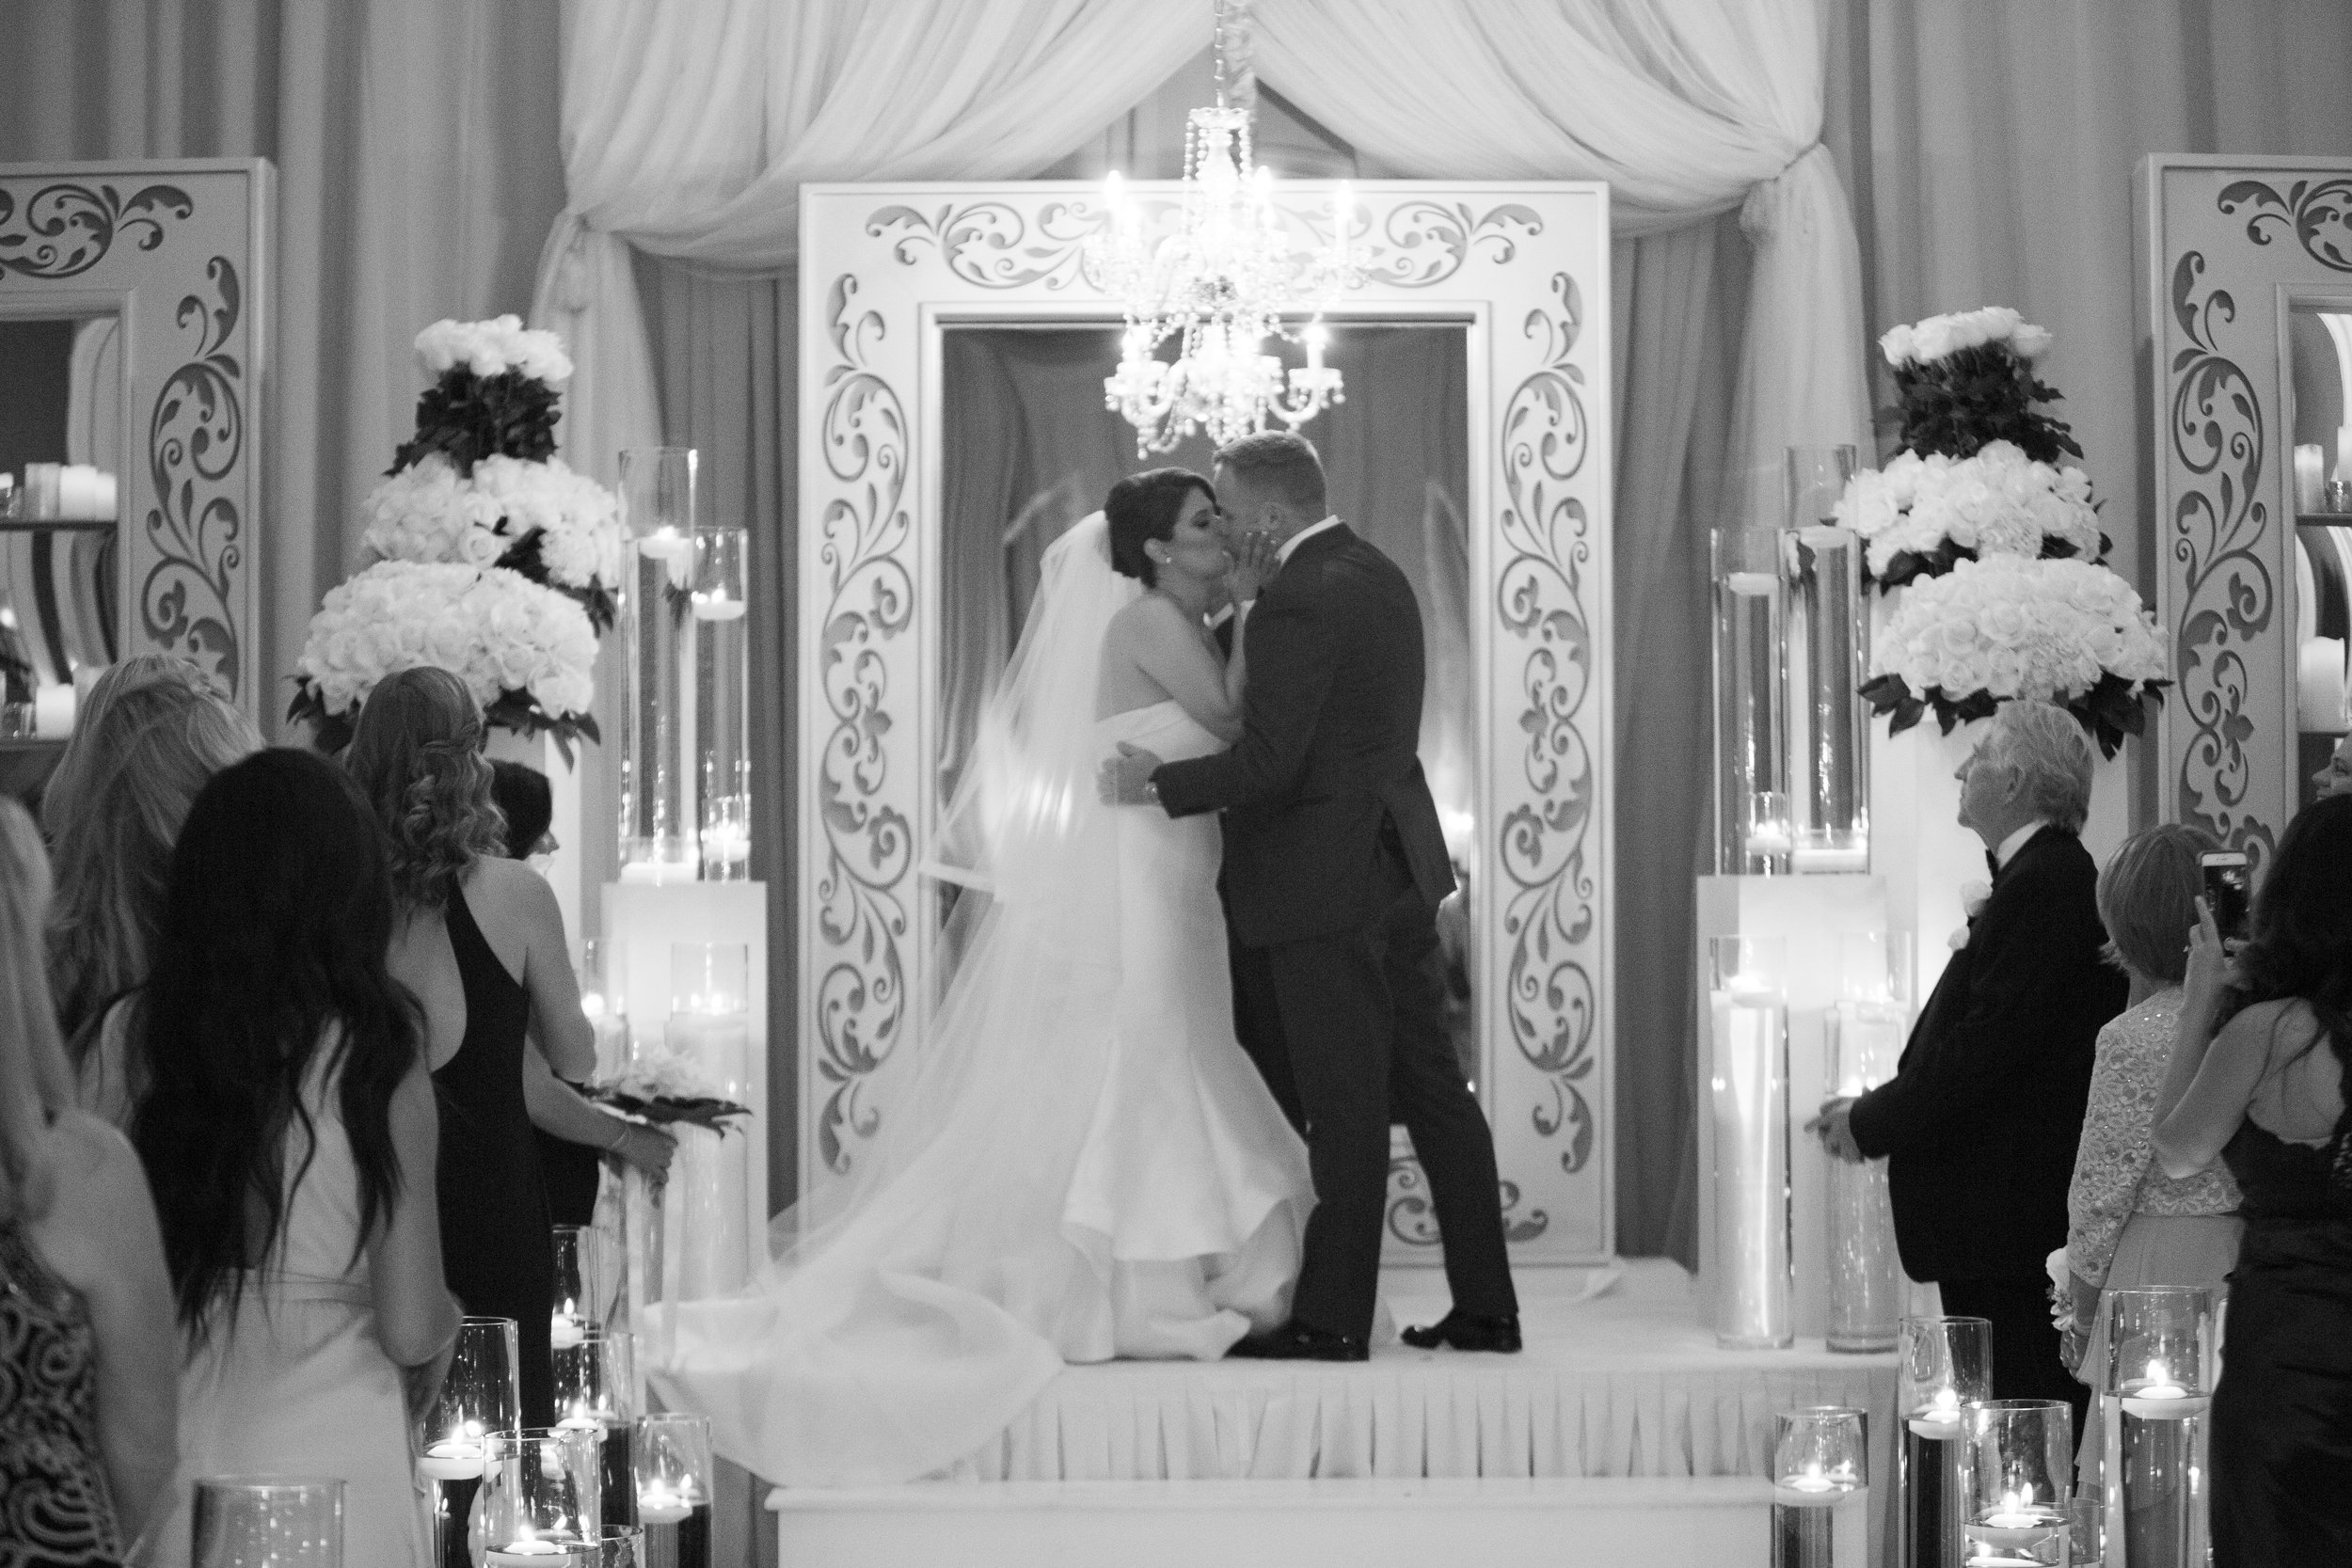 The first kiss in black and white. Four Seasons Wedding by Las Vegas Wedding Planner Andrea Eppolito. Image by AltF Photography. Decor by DBD Vegas.